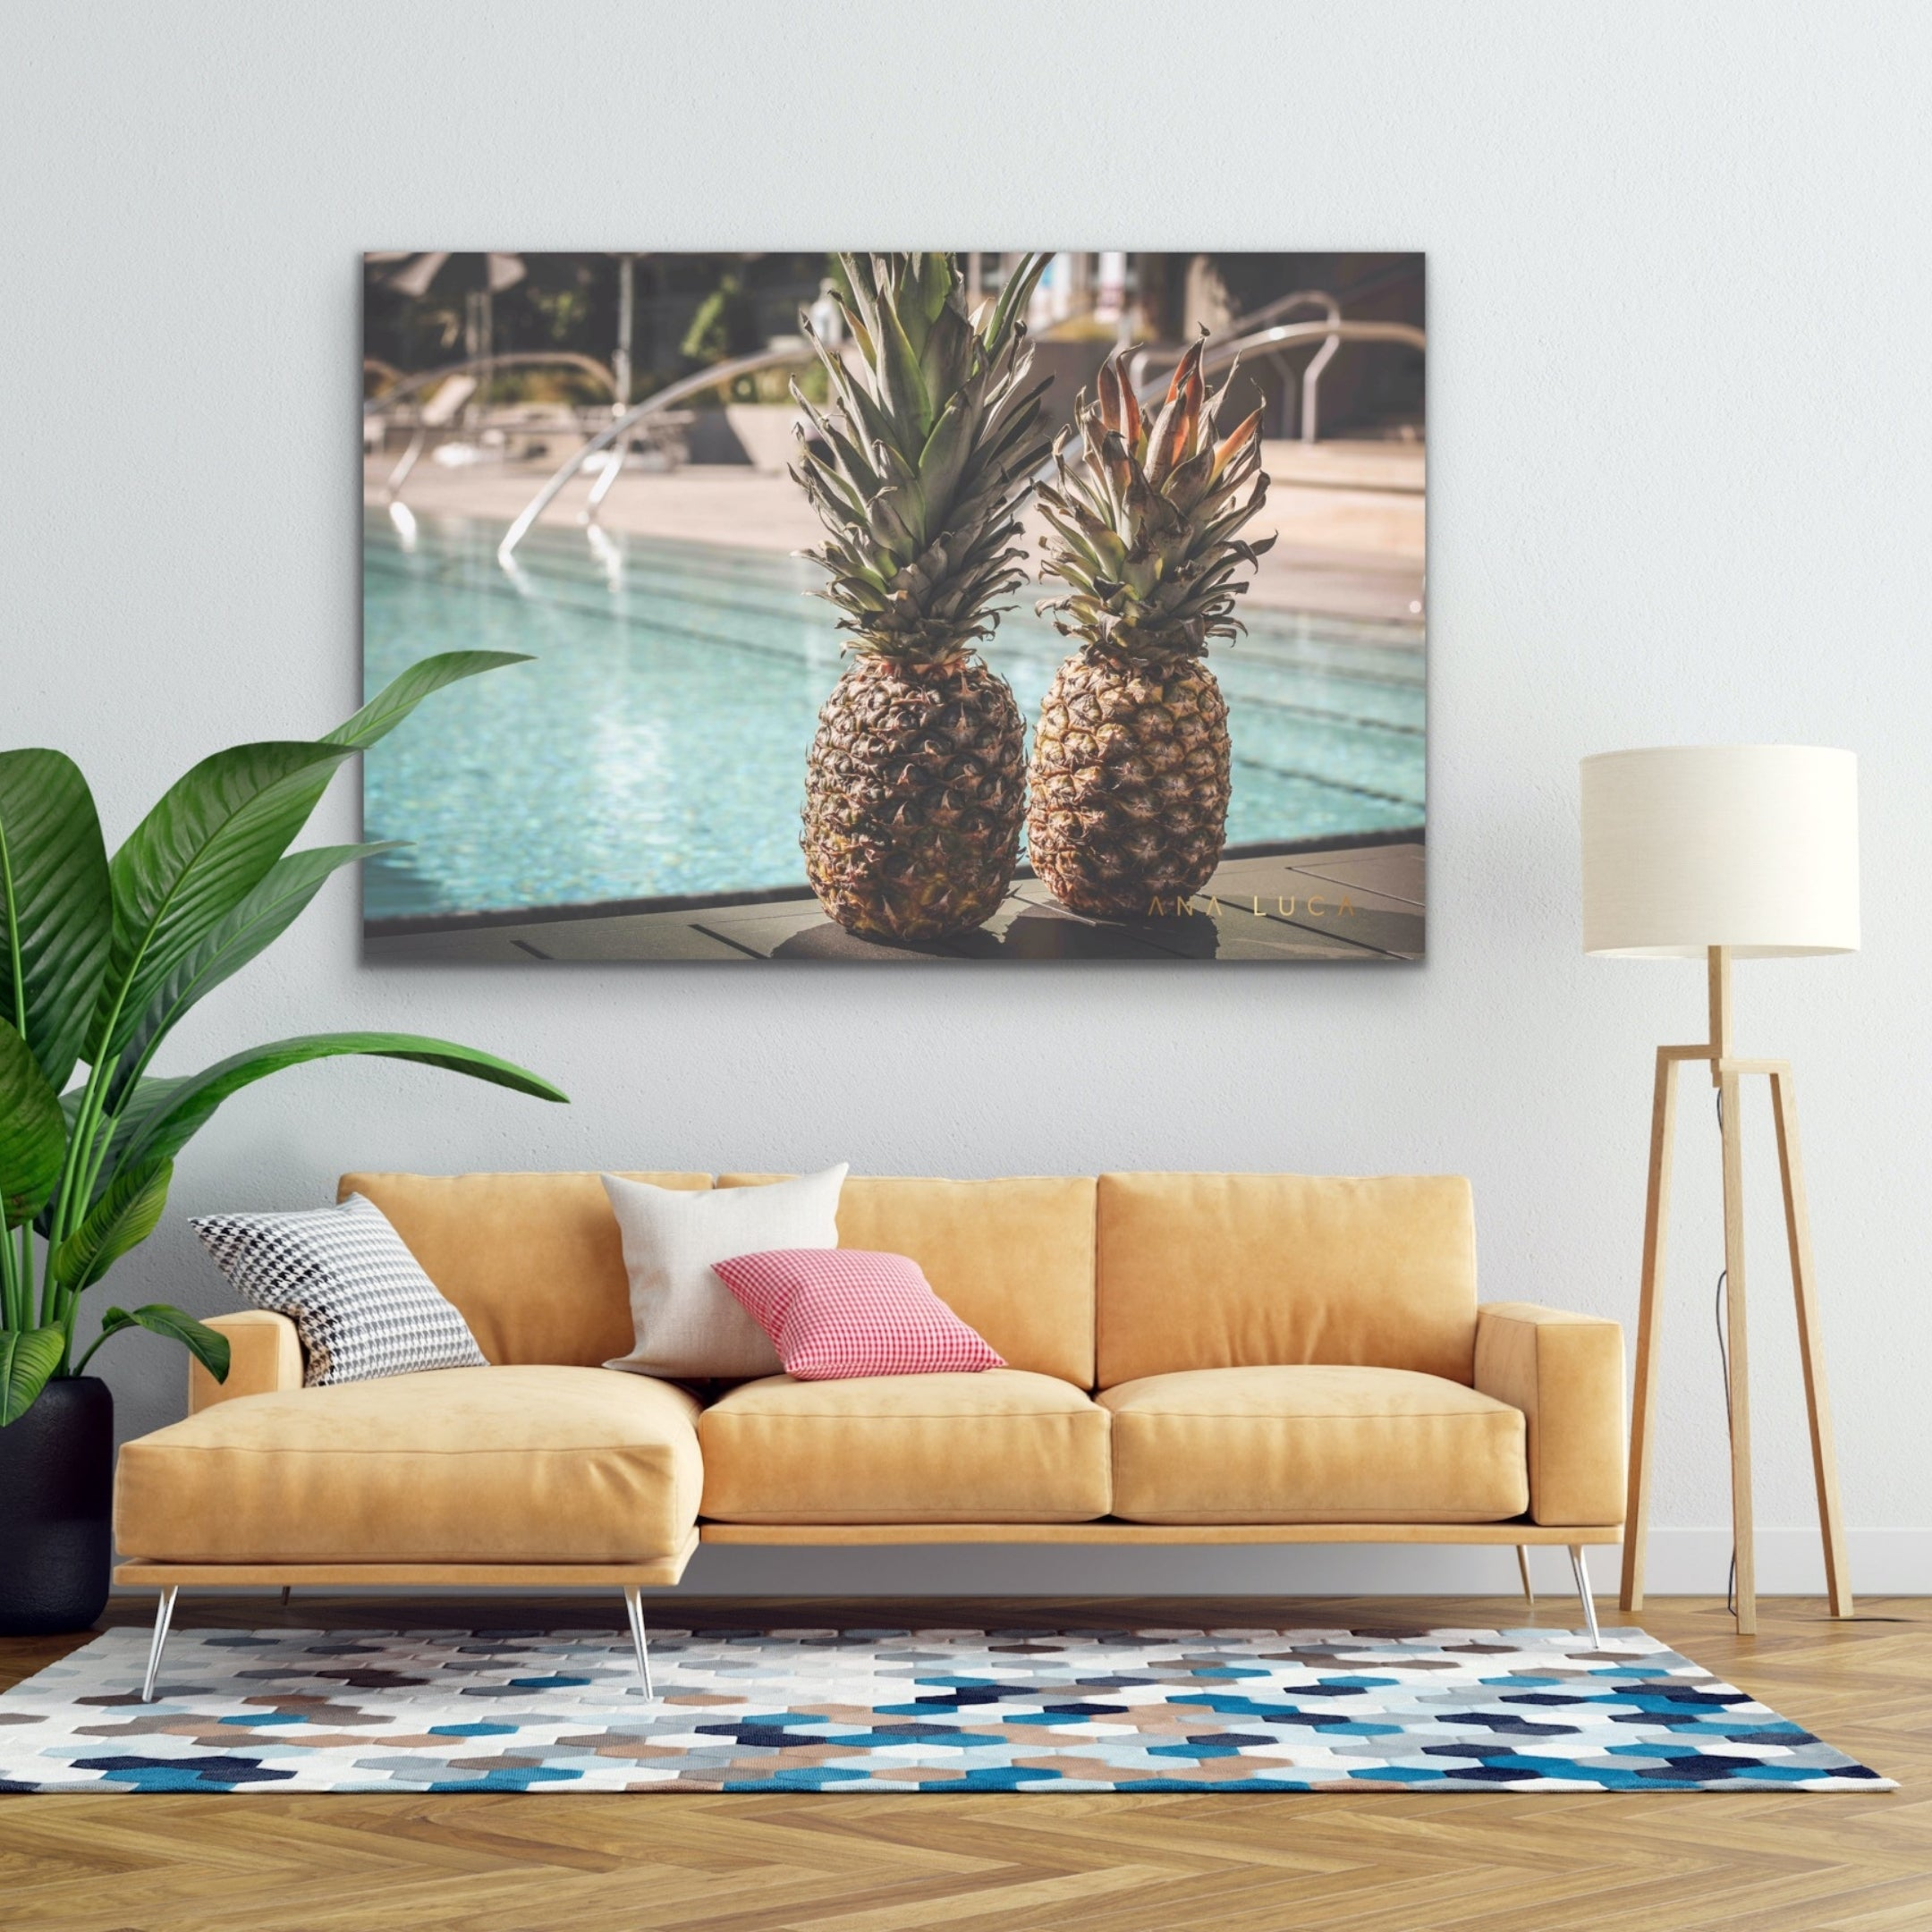 Pineapples At The Pool by Ana Luca